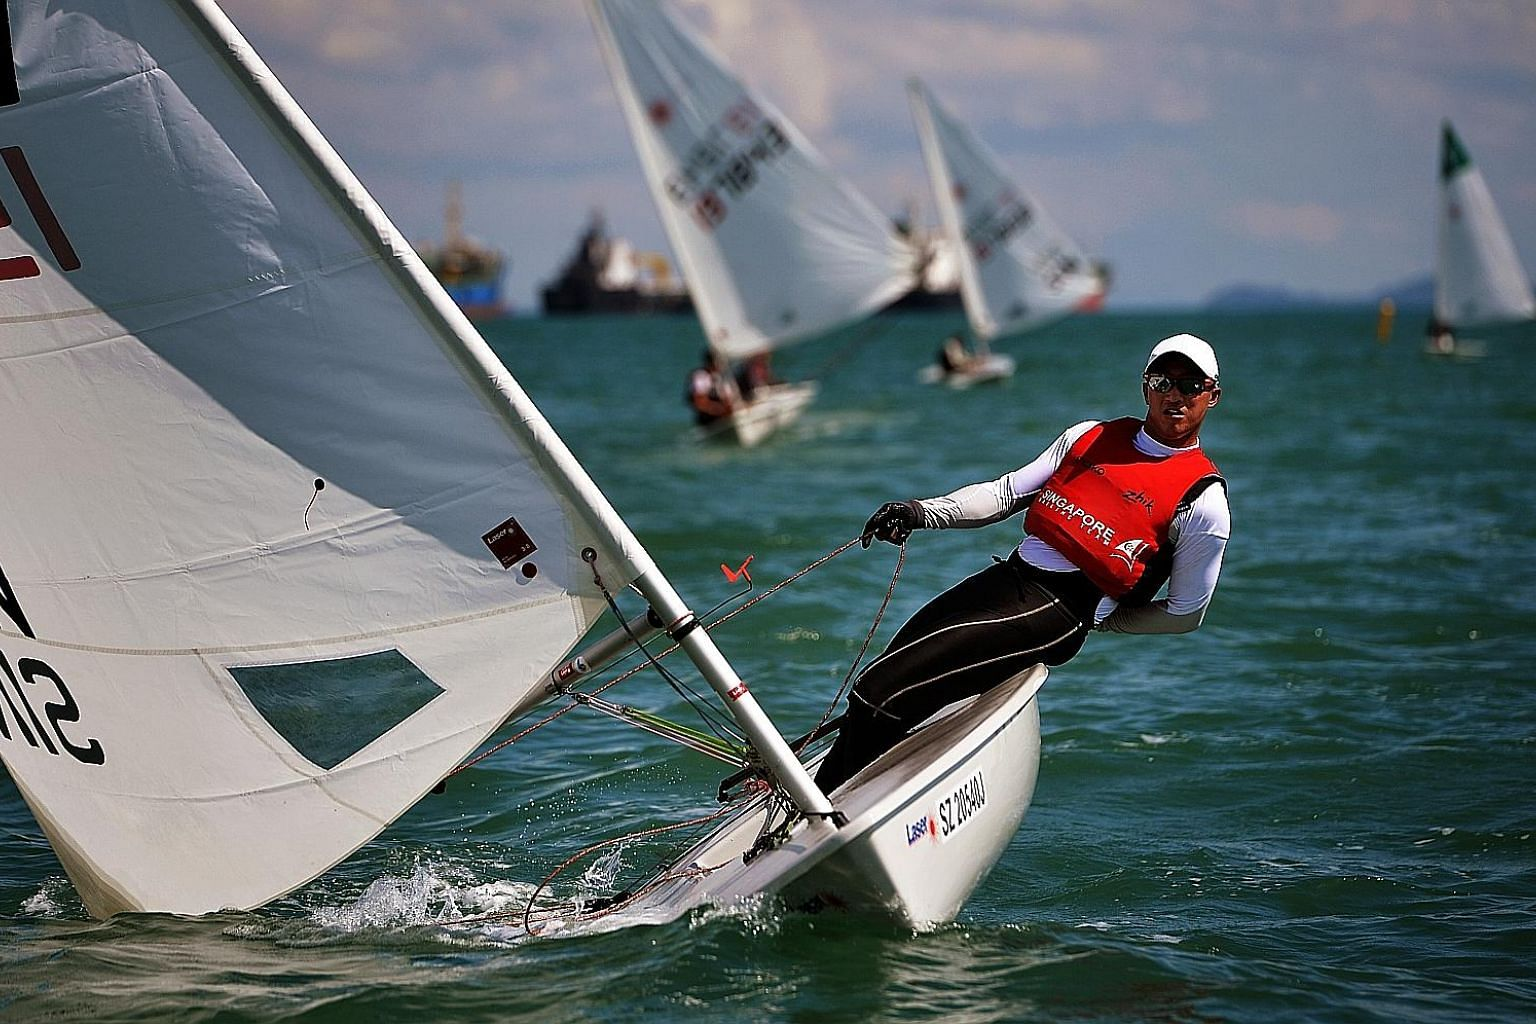 SingaporeSailing's Sailor of the Year Colin Cheng finished 20th out of 46 Laser Standard competitors at last year's Rio de Janeiro Olympics.